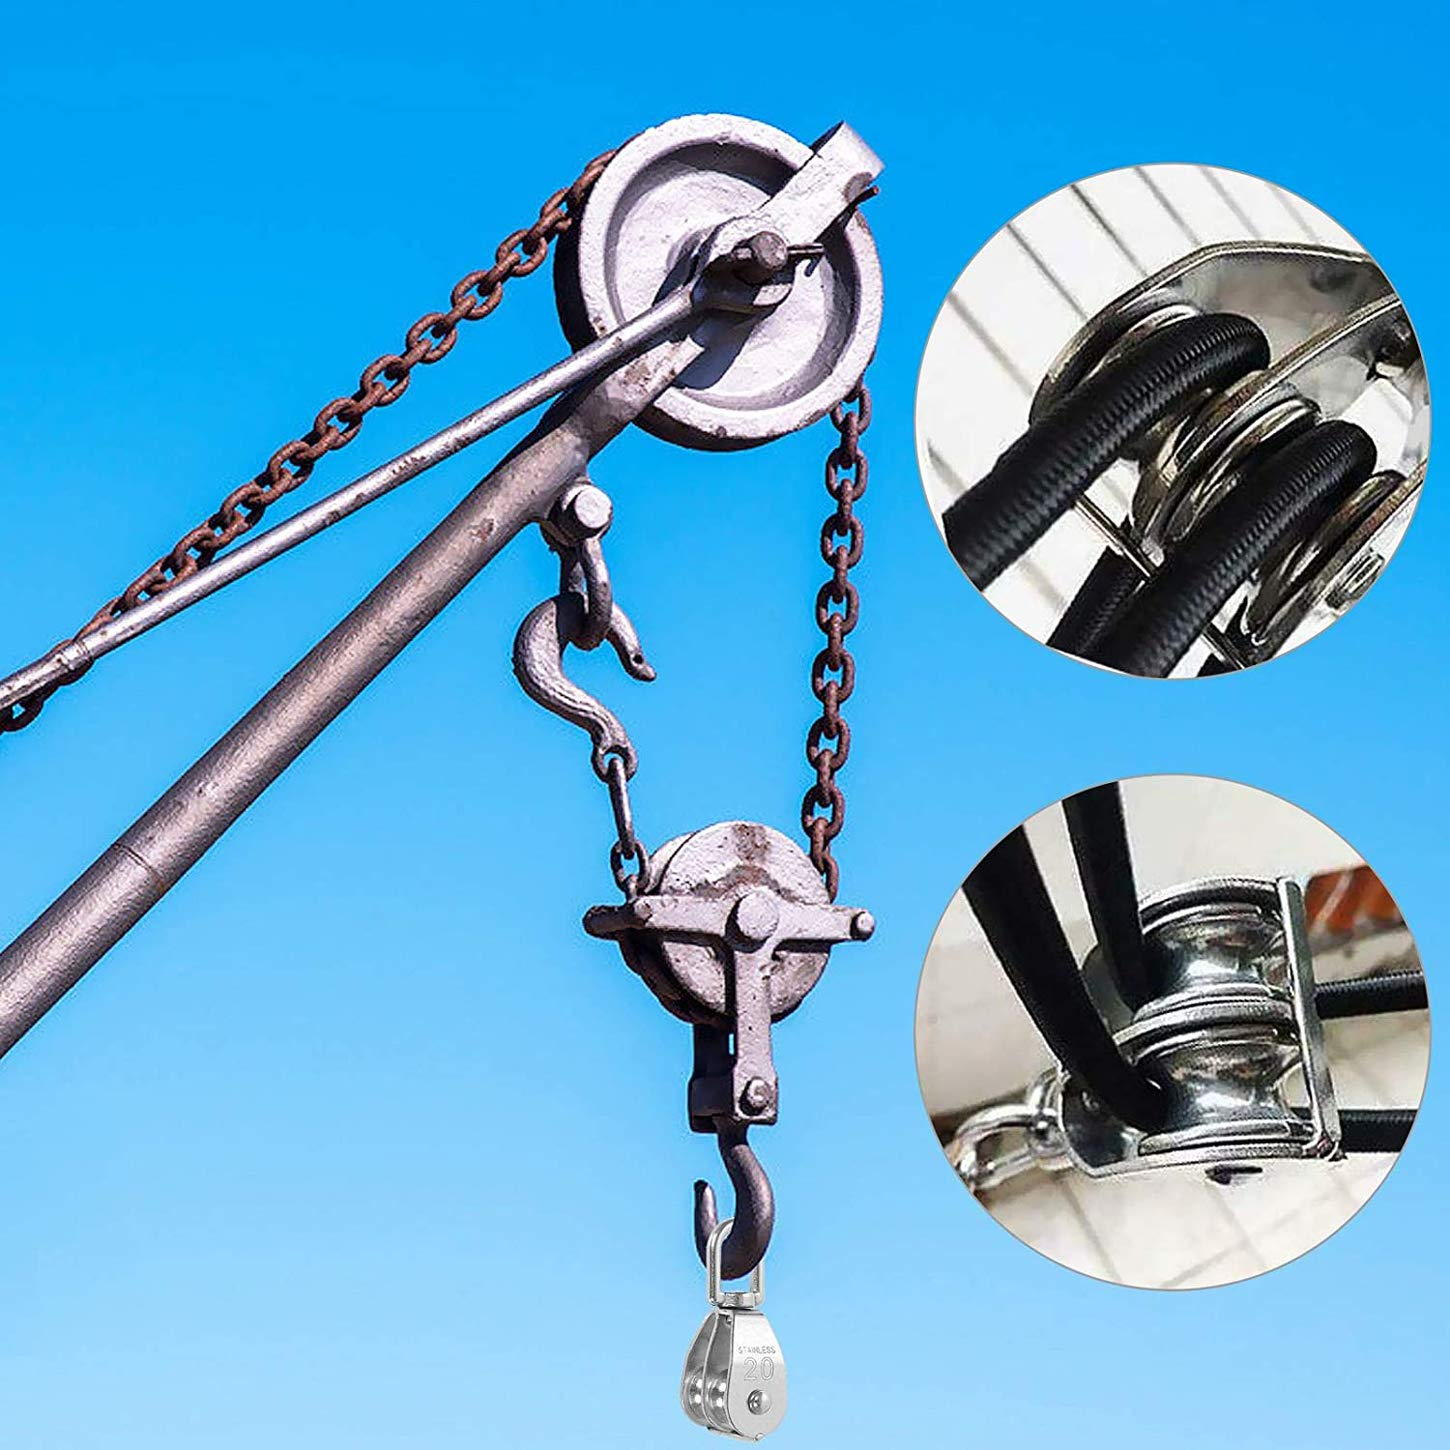 Construction Transportation Crane Swivel Hook for Large Kayak Mining 2Pcs M20 Double Swivel Pulley Block Heavy Duty Stainless Steel Lifting Double Pulley Block Factory Family